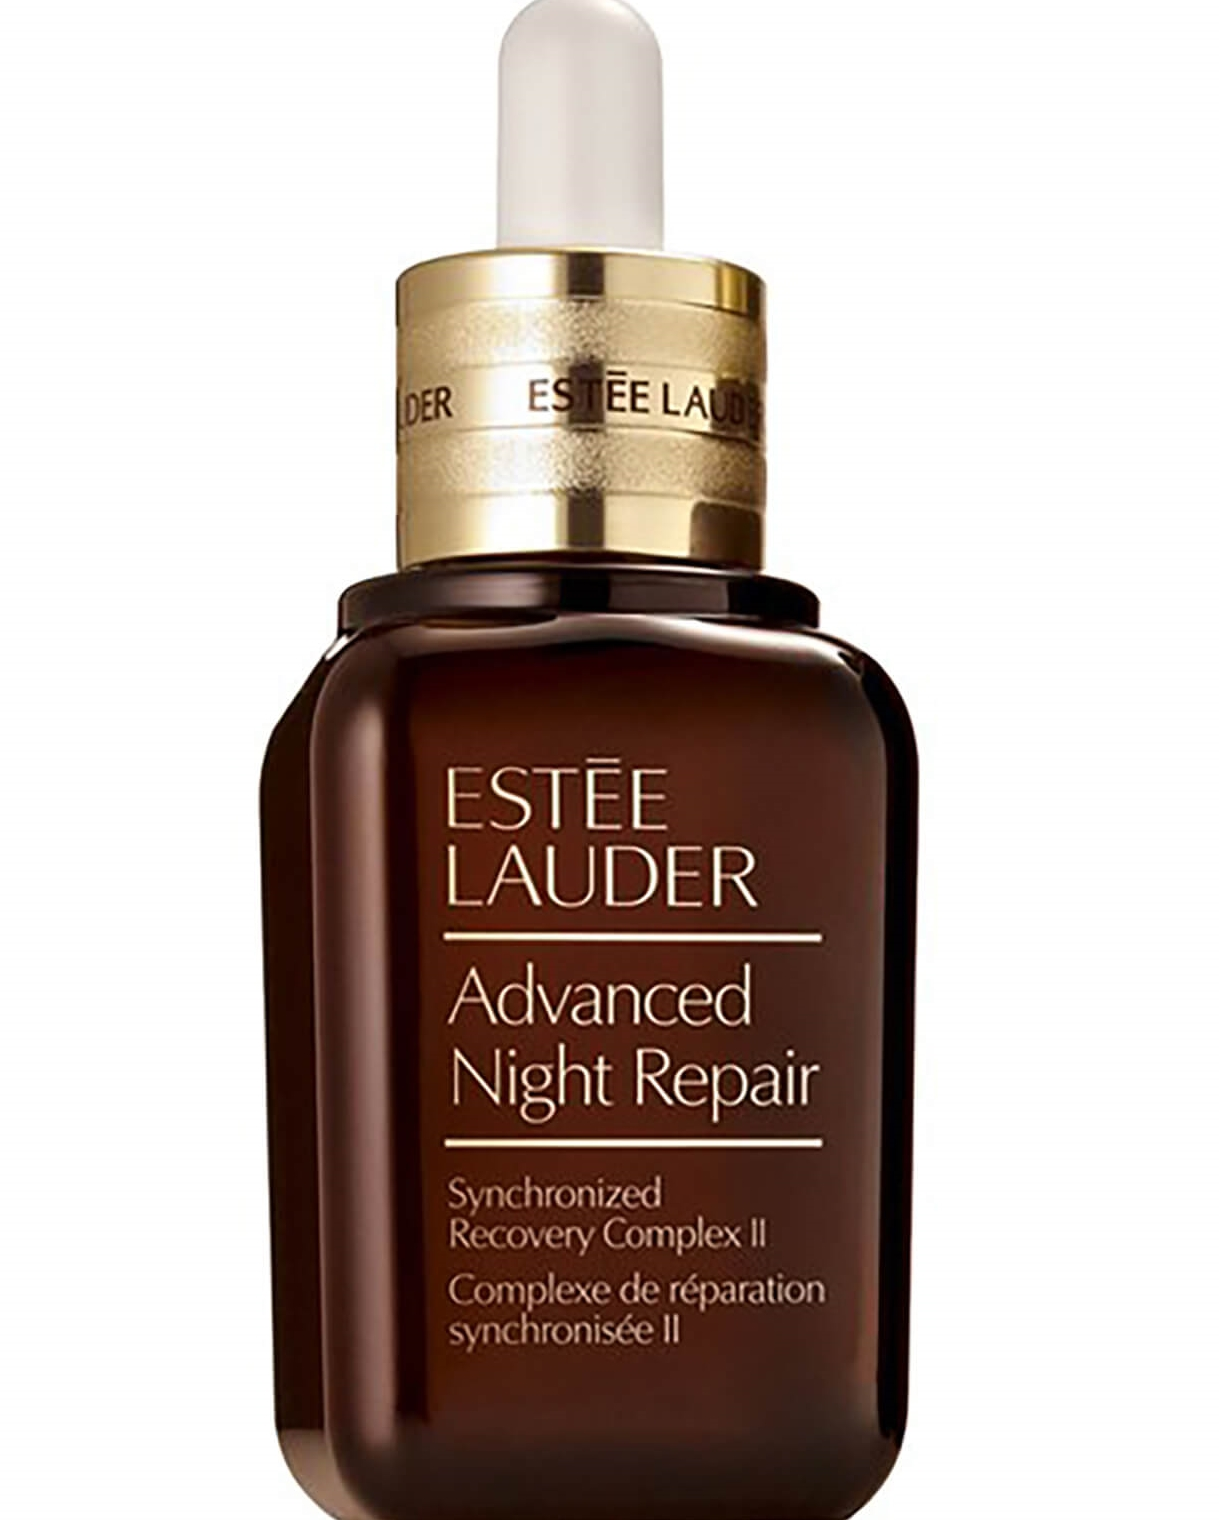 Estee Lauder Advanced Night Repair Synchronized Recovery Complex ll - Top 15 Picks from Nykaa Luxe Store - Best Skin Care Products for Anti-Aging, Fairness & De-Tan